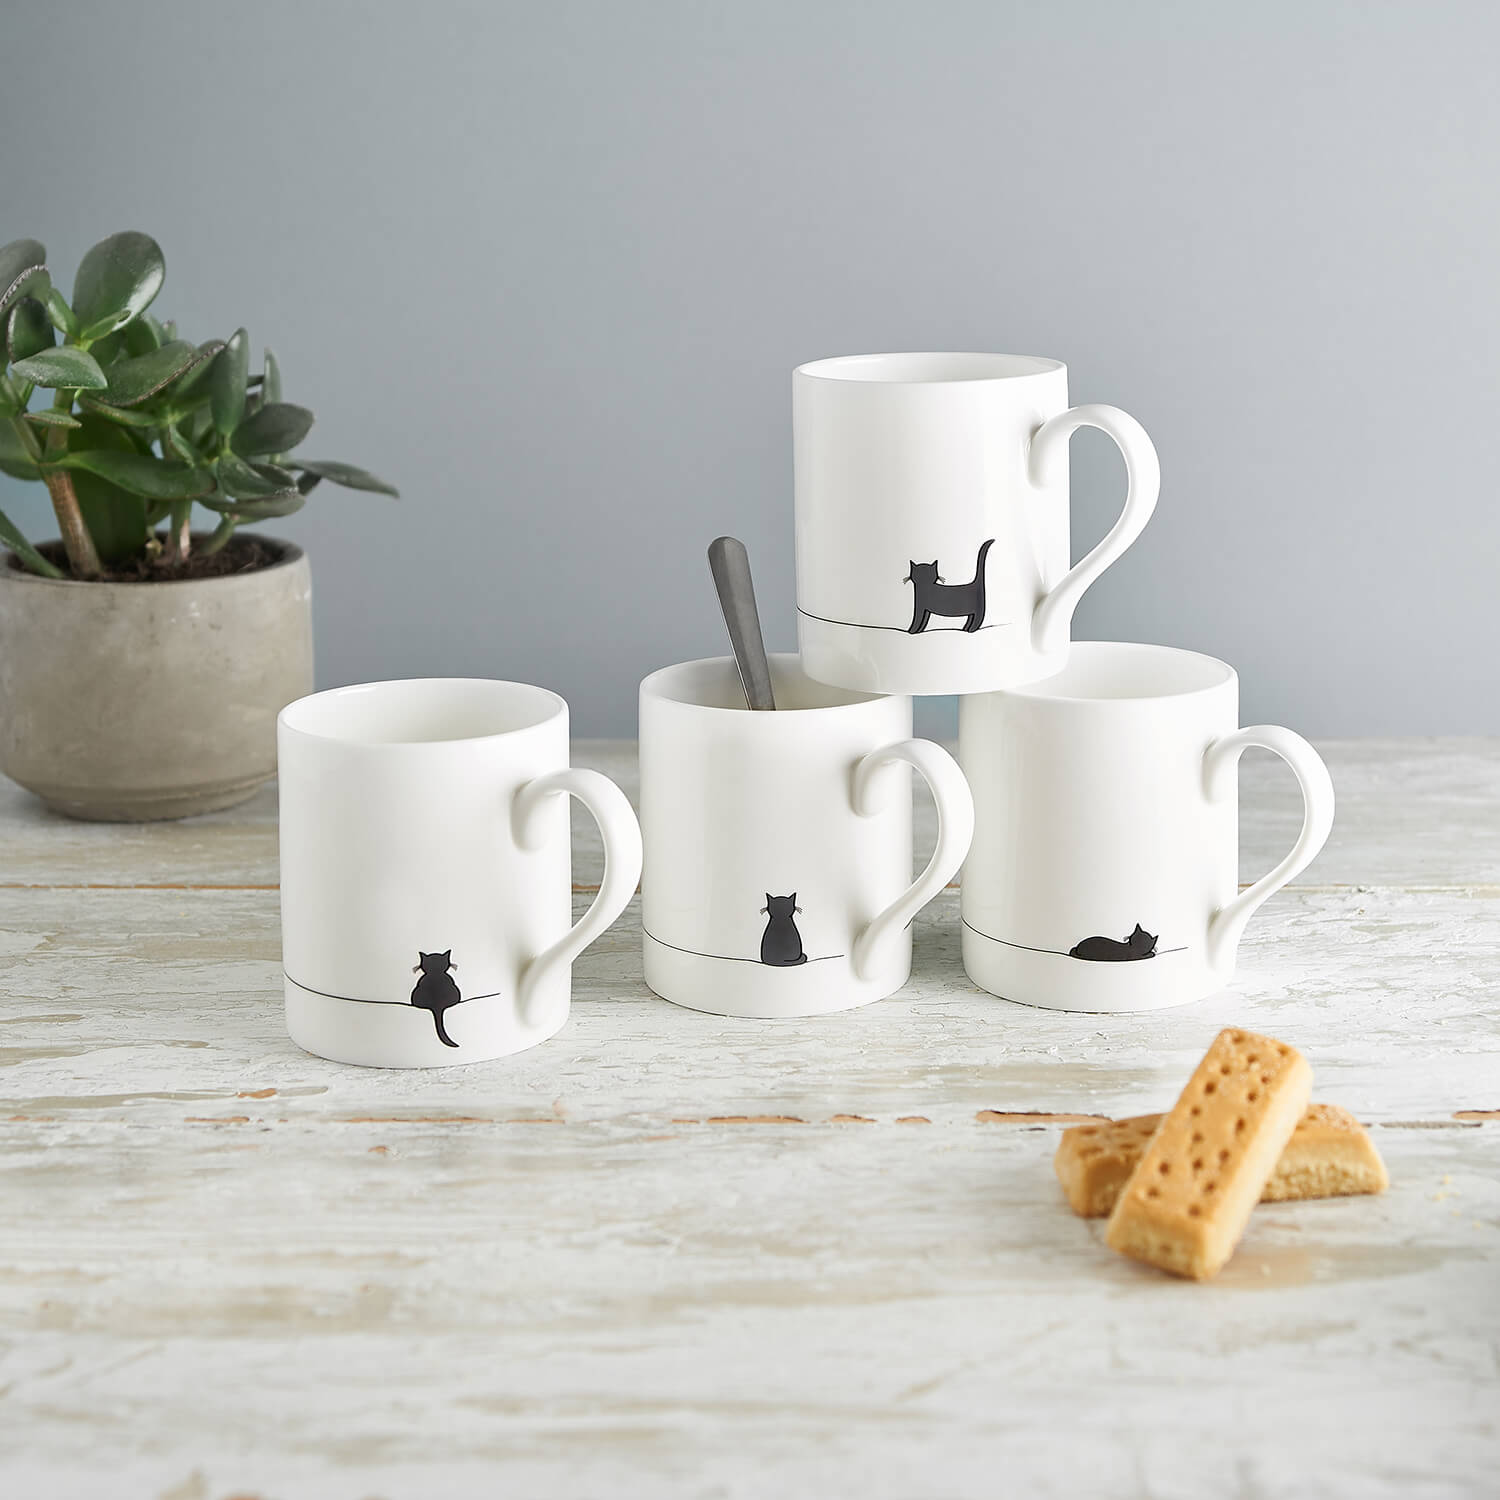 Simple product photograph of four ceramics mugs by Jin Designs